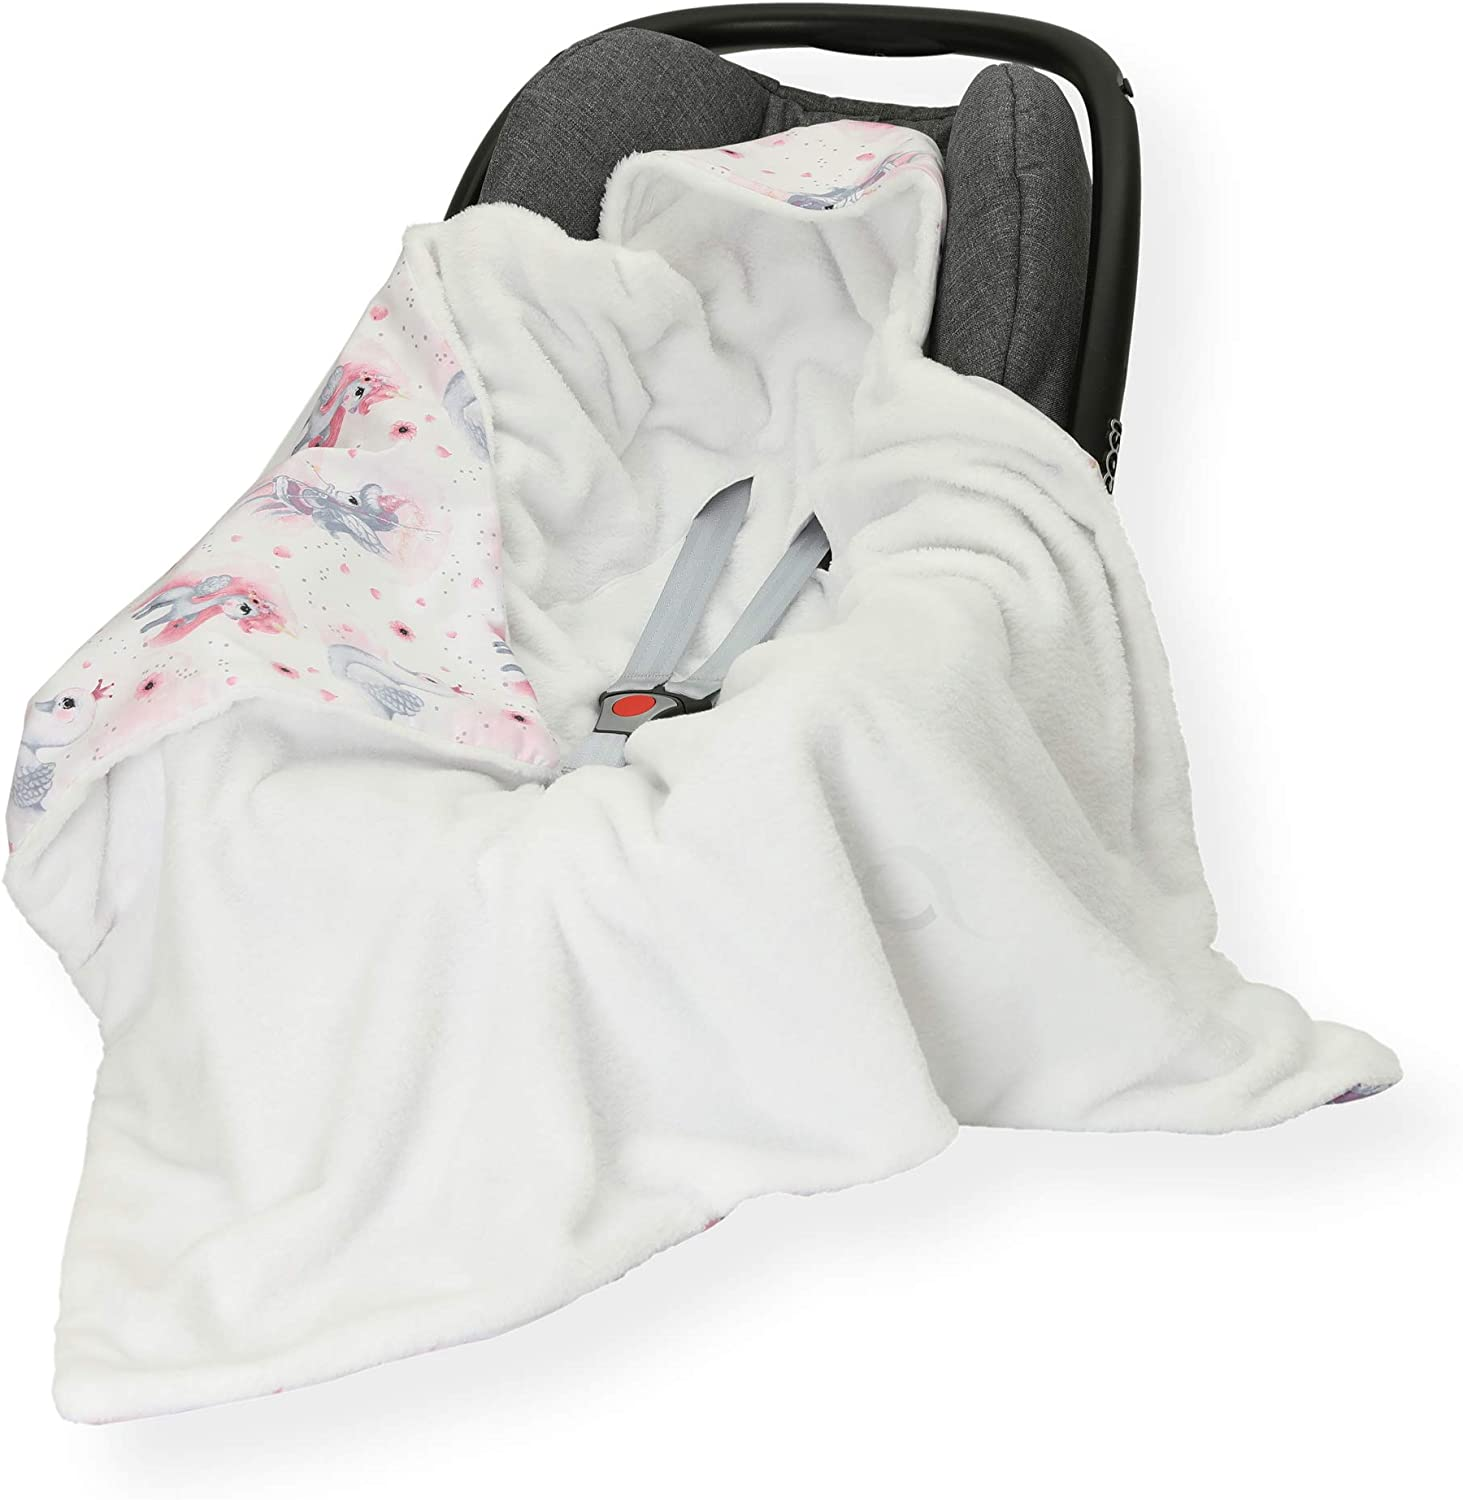 Feathers//White FOOTMUFF Double Sided 100 x 100cm Hooded Blanket with SEAT Belt Holes CAR SEAT Blanket//Cover//COSYTOES